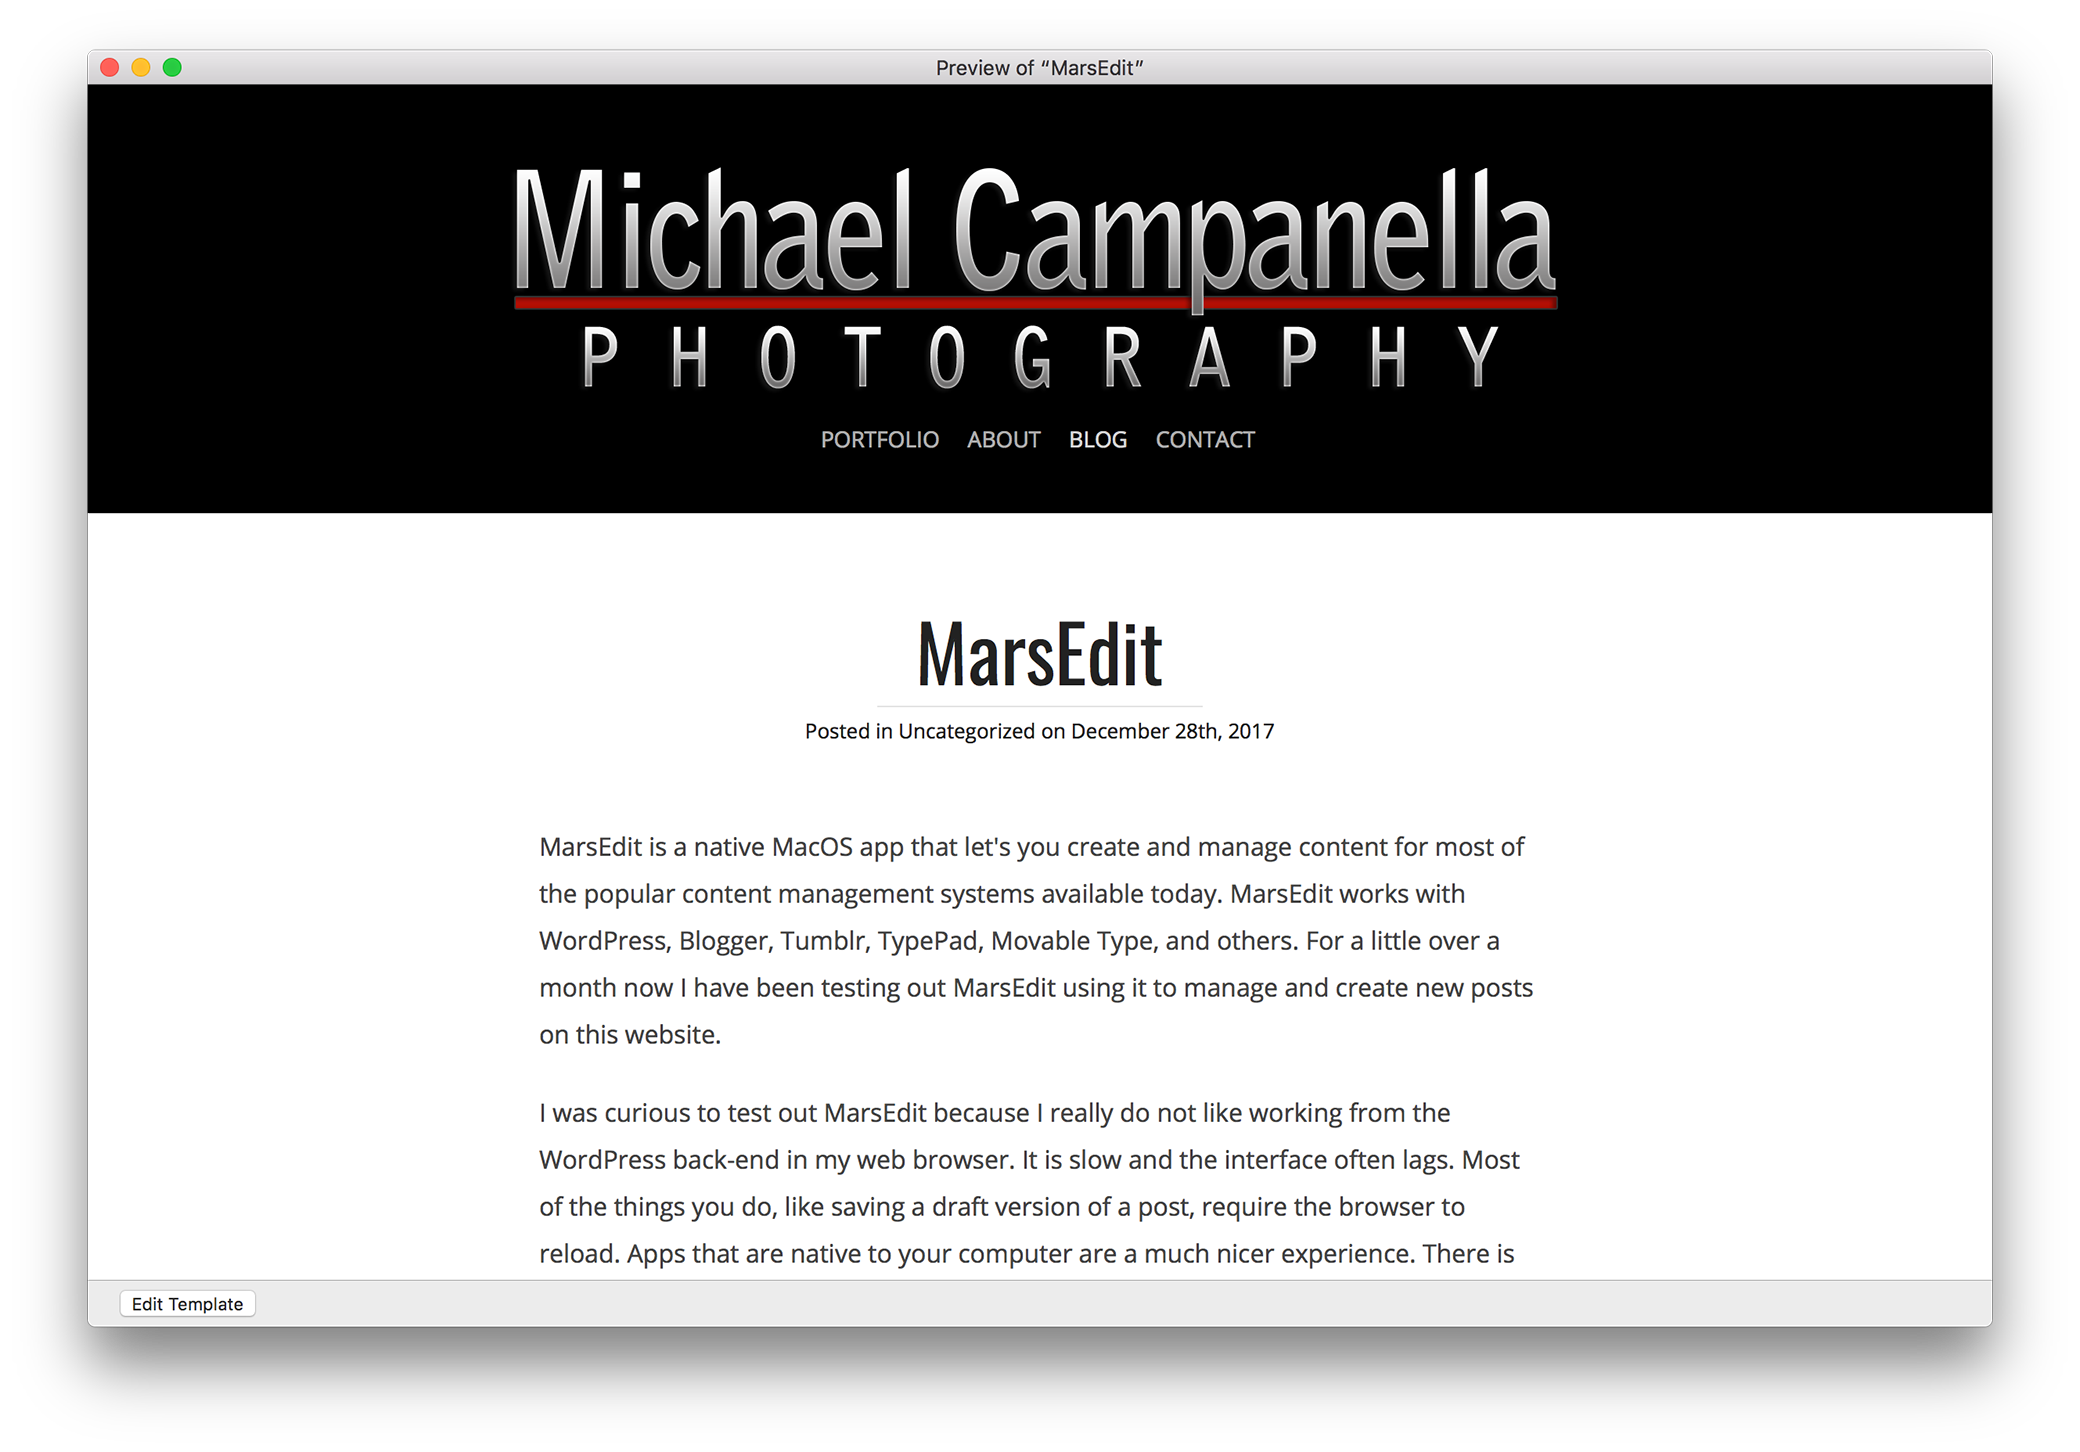 MarsEdit: Preview template window